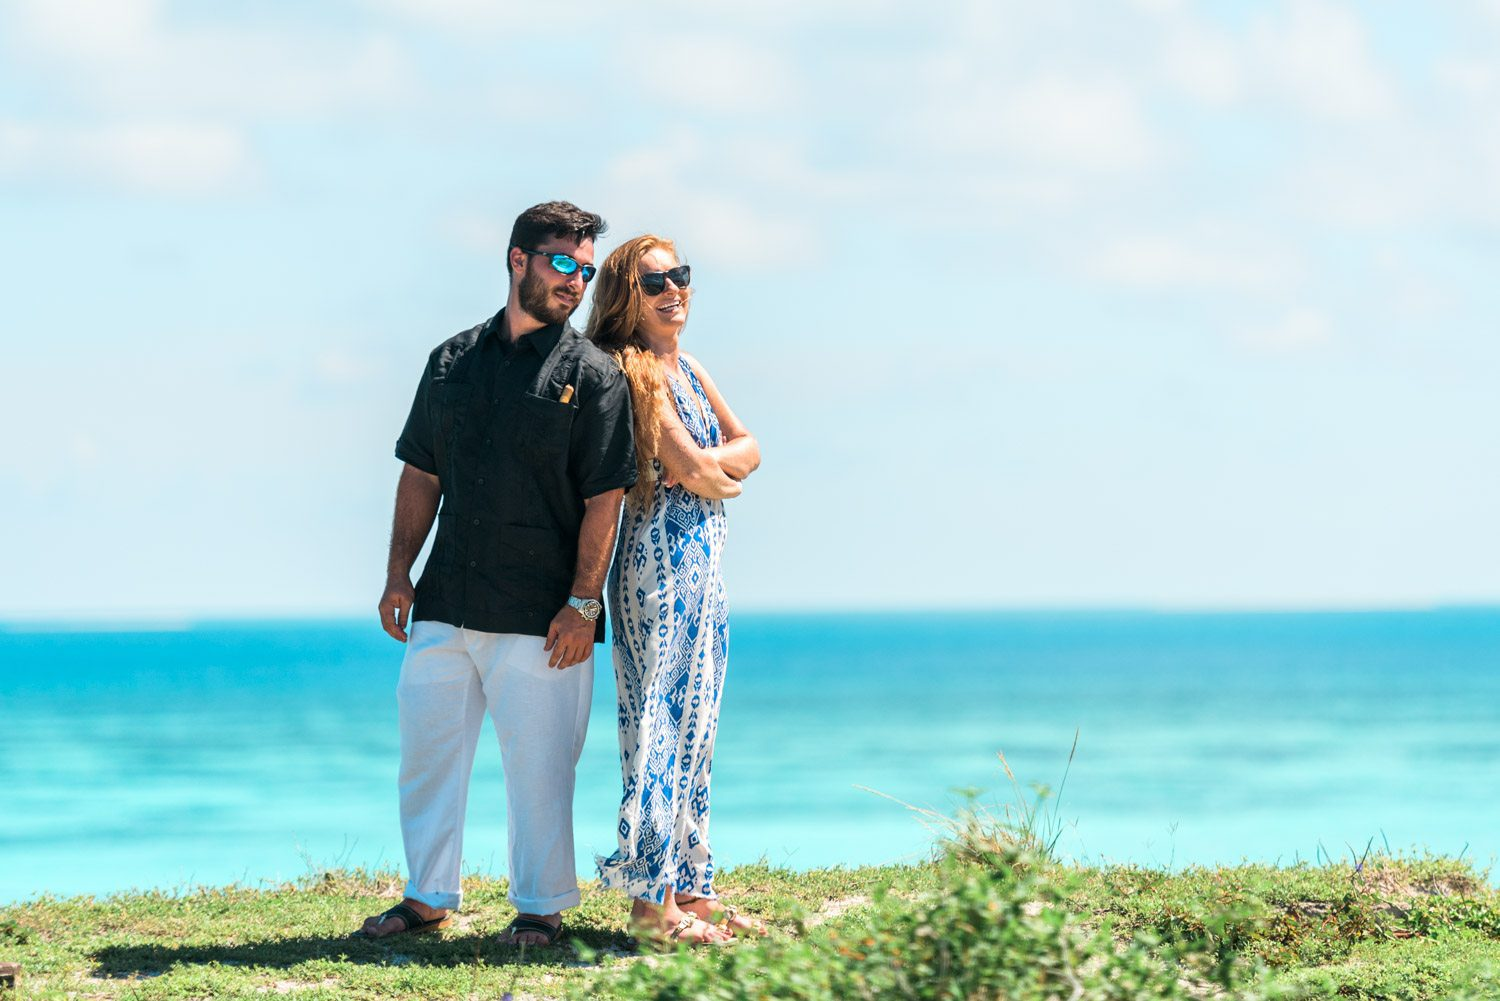 Katherine Oscar Engagement Photos Dry Tortugas 41 - Island Adventure Engagement Session - Dry Tortugas National Park and Fort Jefferson